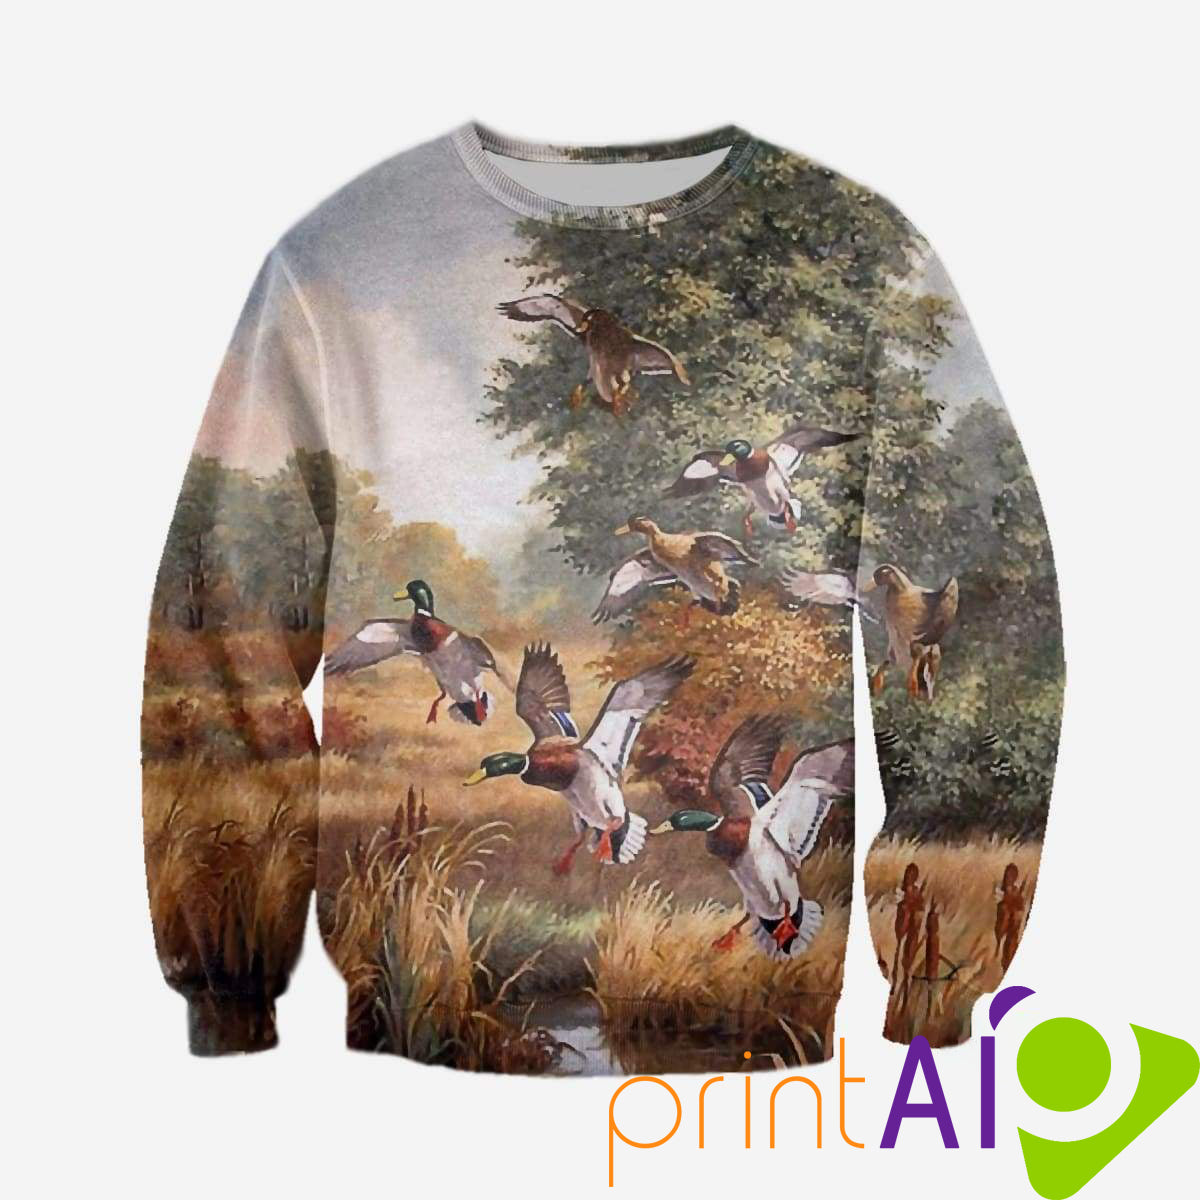 cab8ca8721b2 3D All Over Printed Duck hunting Clothes - Print AIO